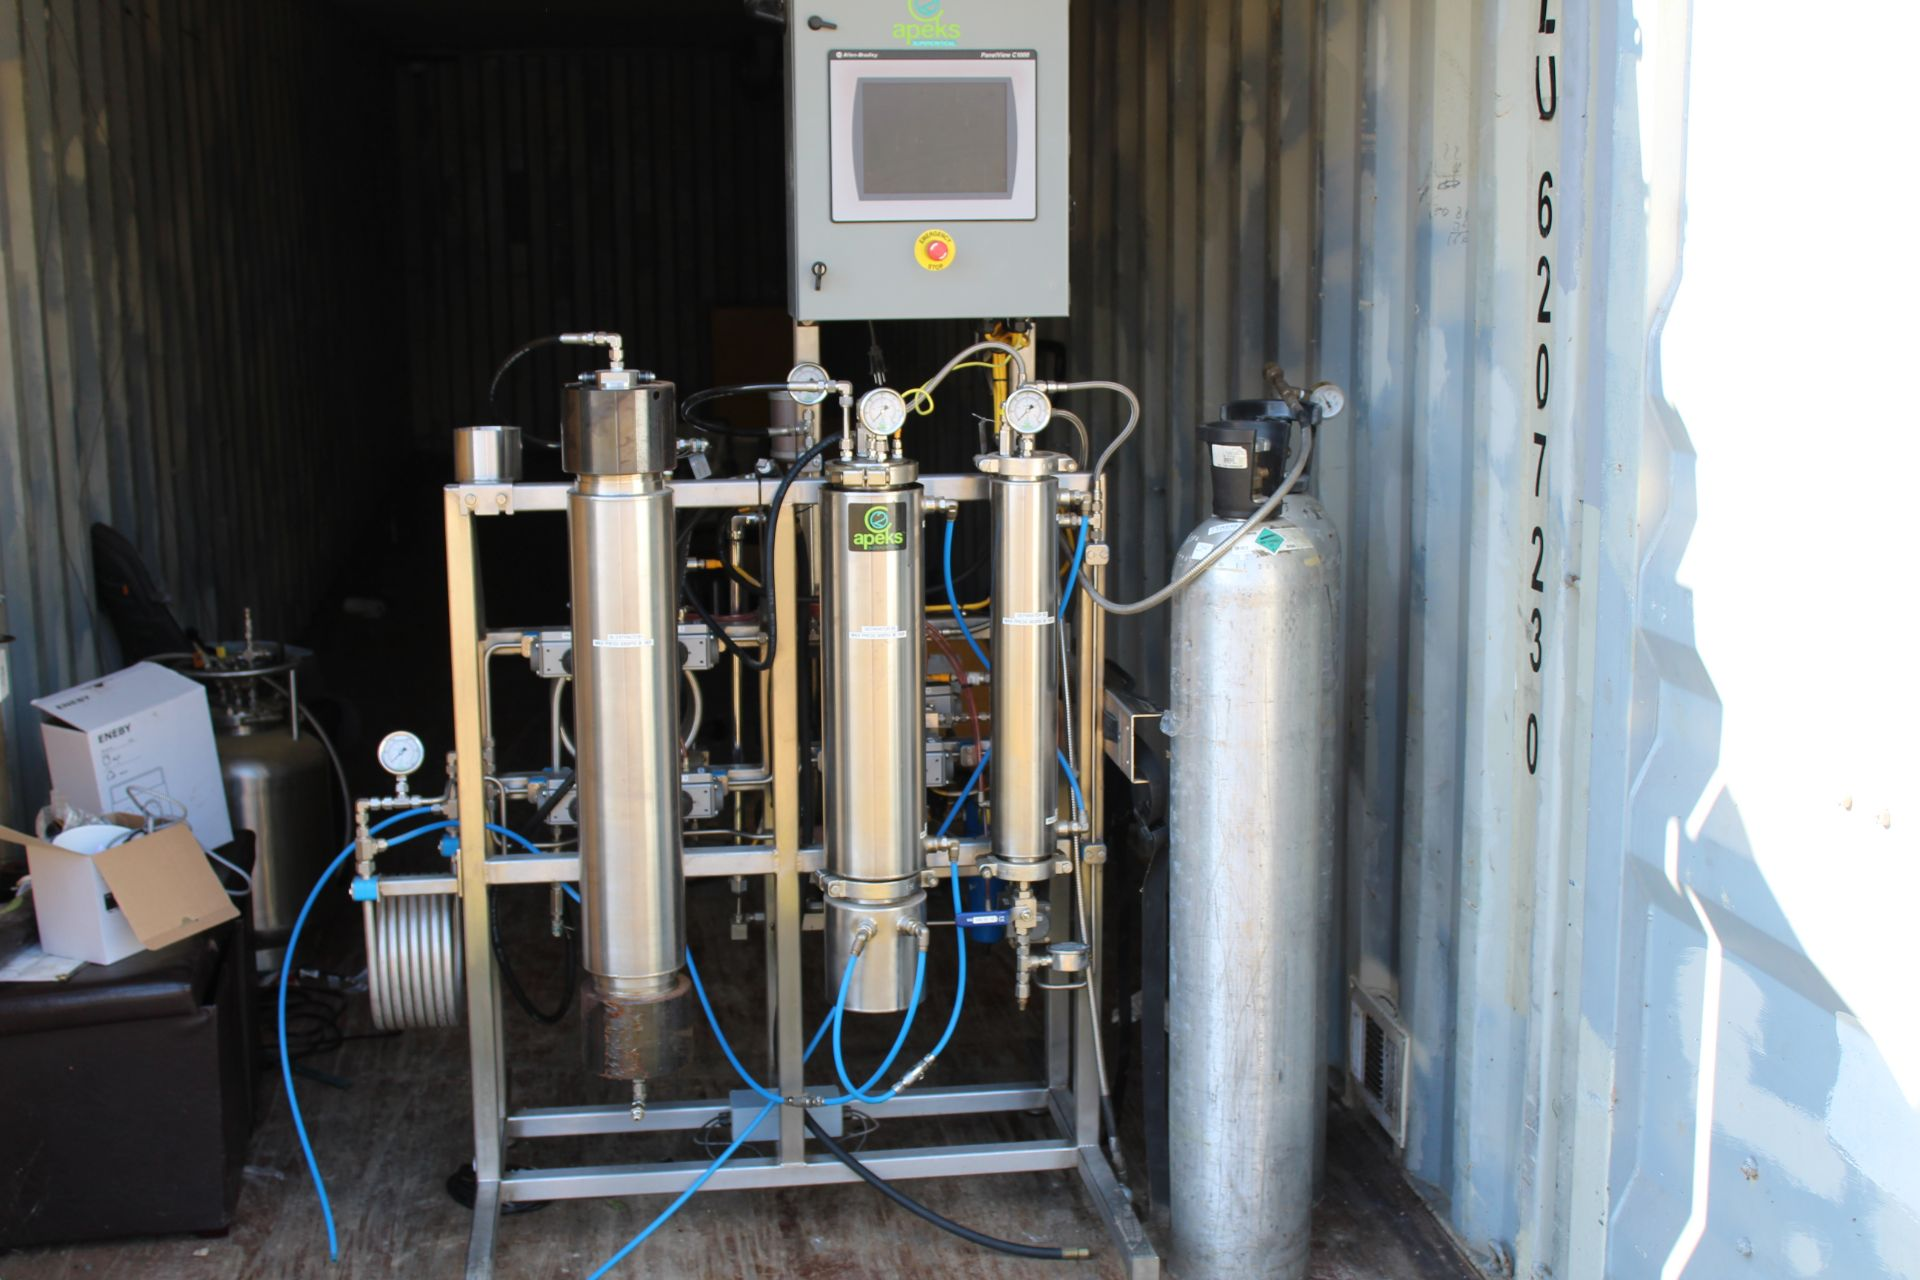 Used-Apeks 2x 5L 5000 PSI 5L Extraction System. Holds up to 3 lbs of dry/ground material